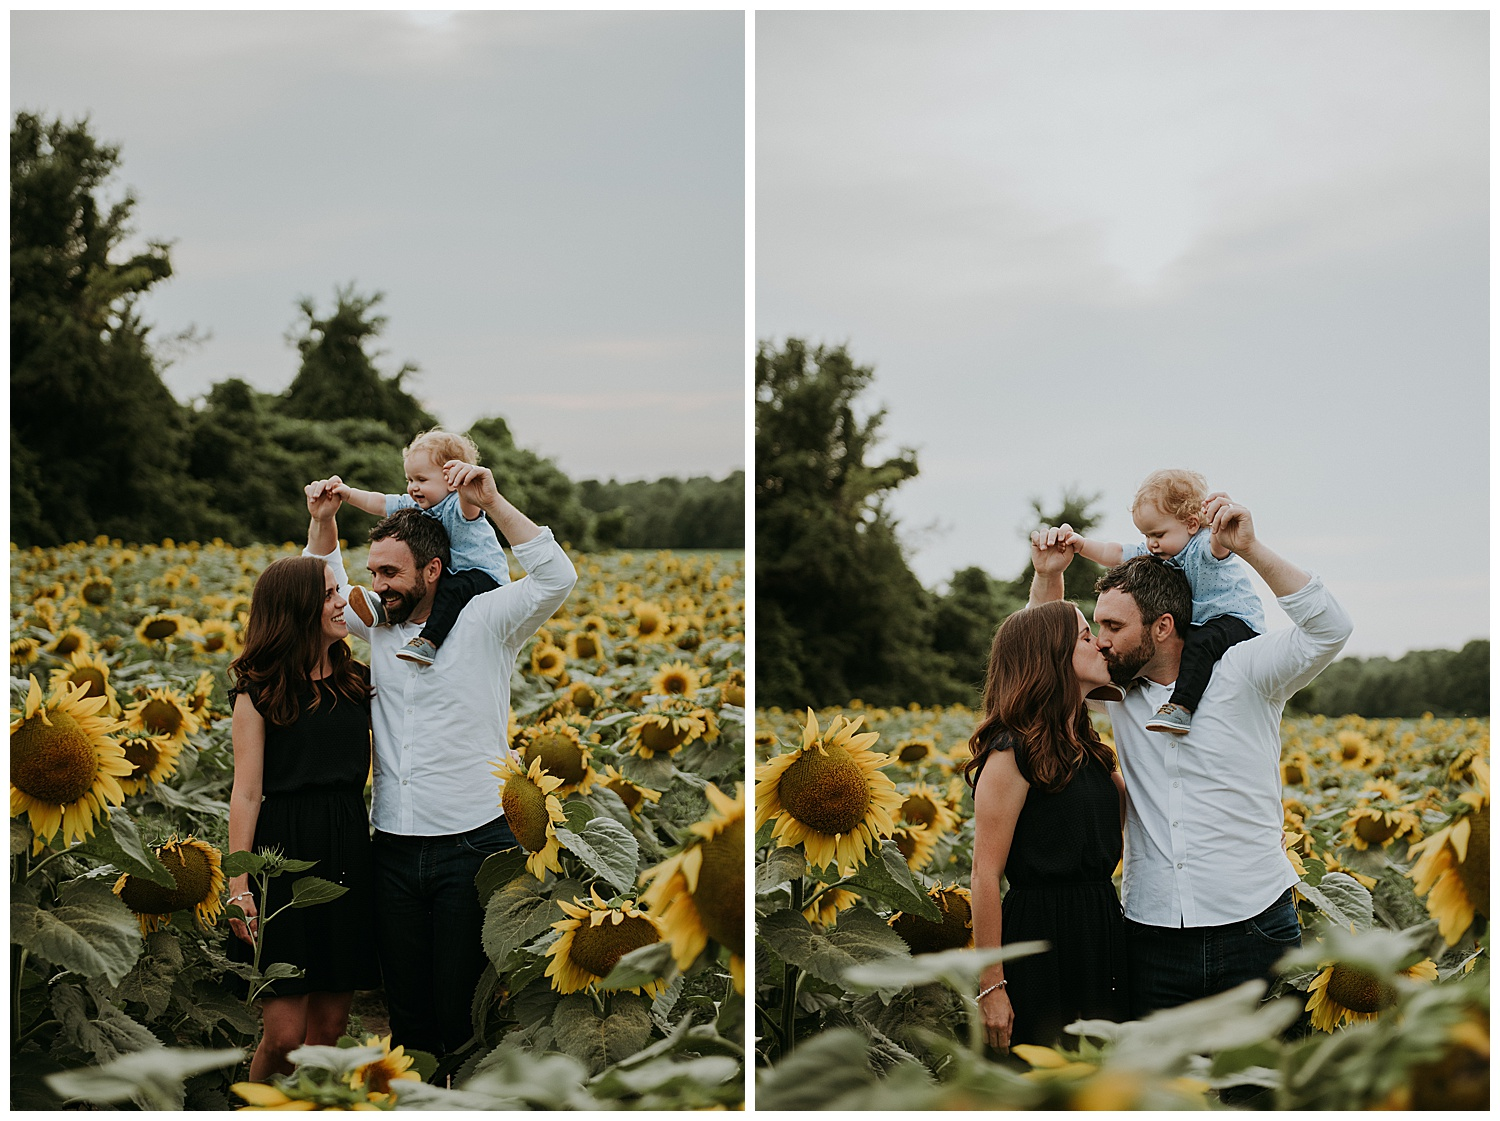 Holly McMurter Photographs | Prince Edward County Sunflower Family Session_0007.jpg